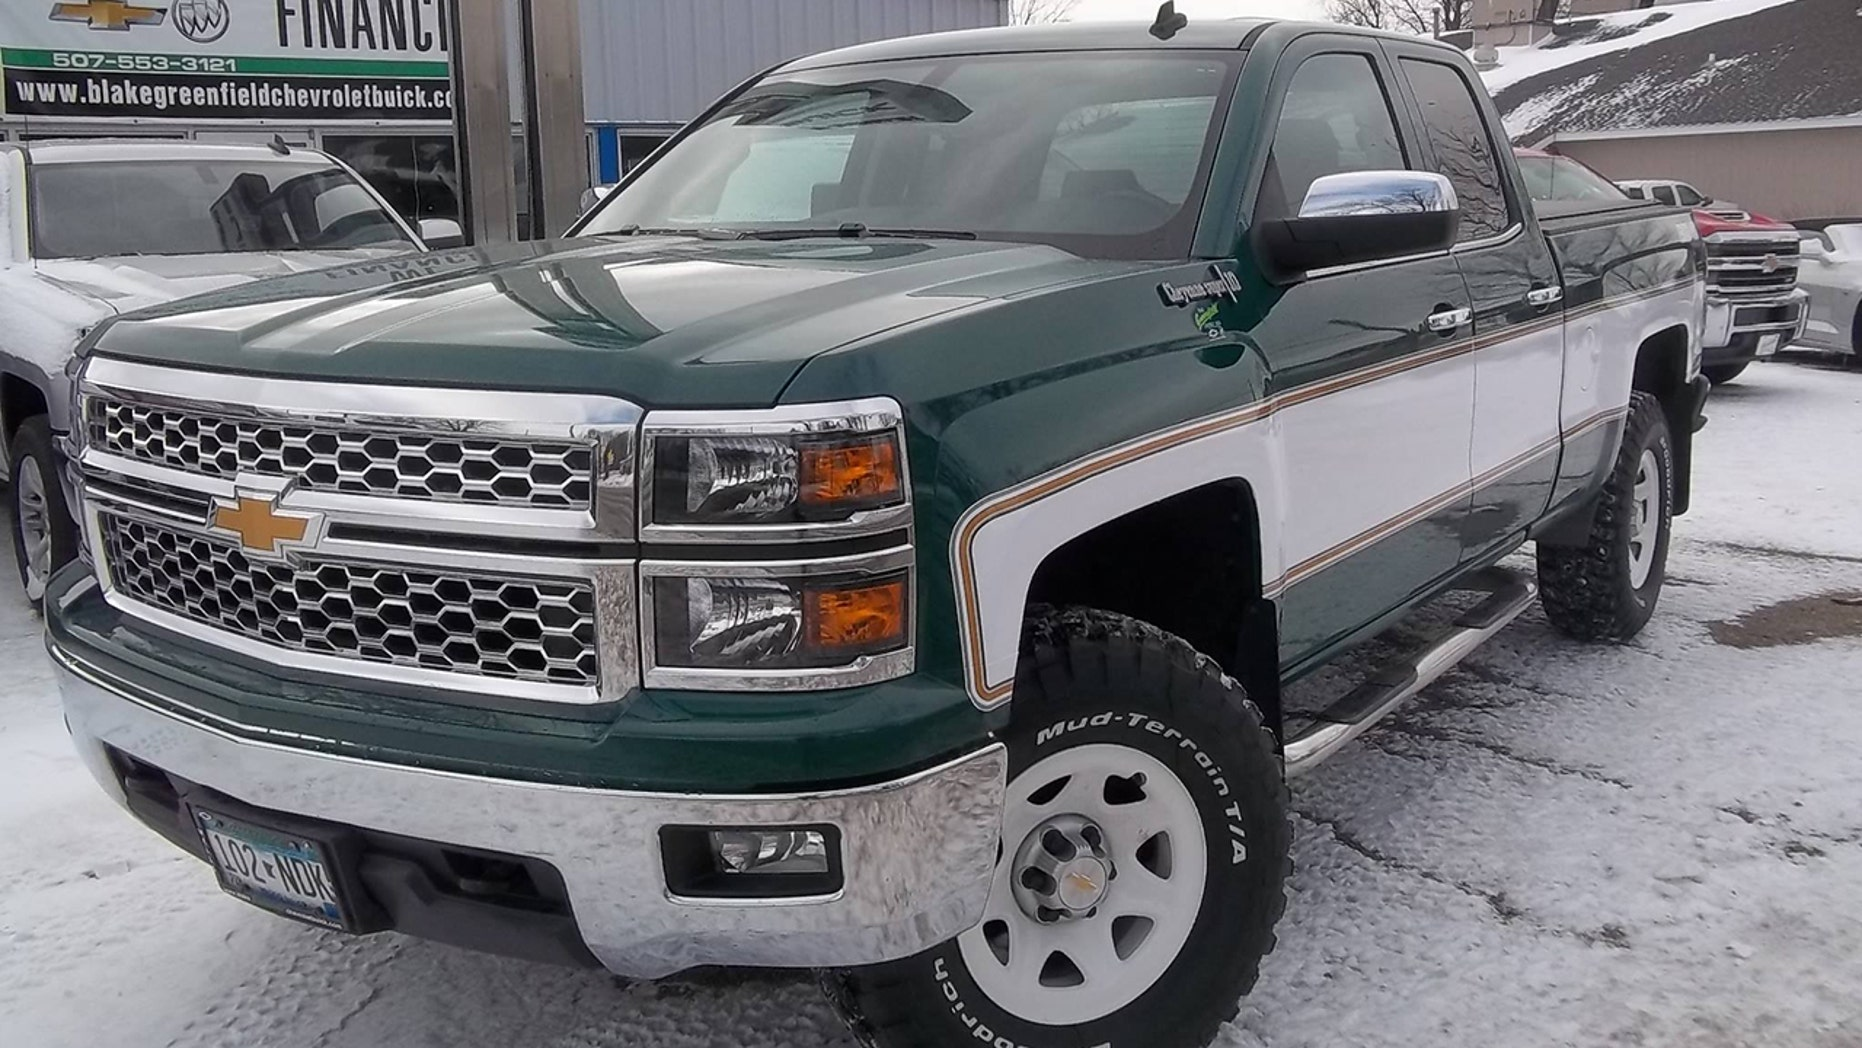 Blake Greenfield Chevrolet Buick has turned the Silverado into a time machine with a retro Cheyenne Super 10 package.